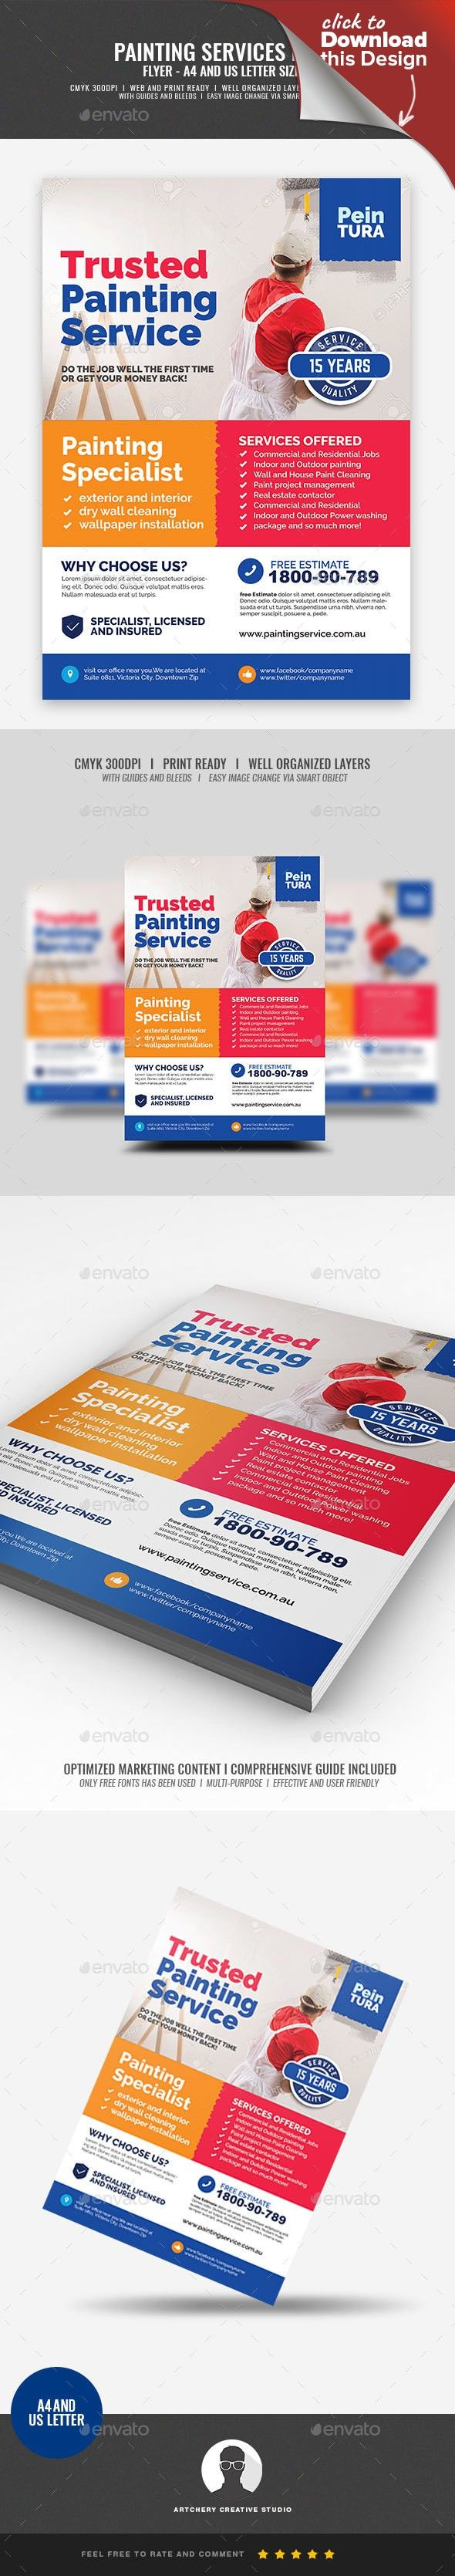 A4 Flyer Acrylic Advertisement Brush Paint Building Color Colorful Commercial Contractor Creative Gloss Home Reno